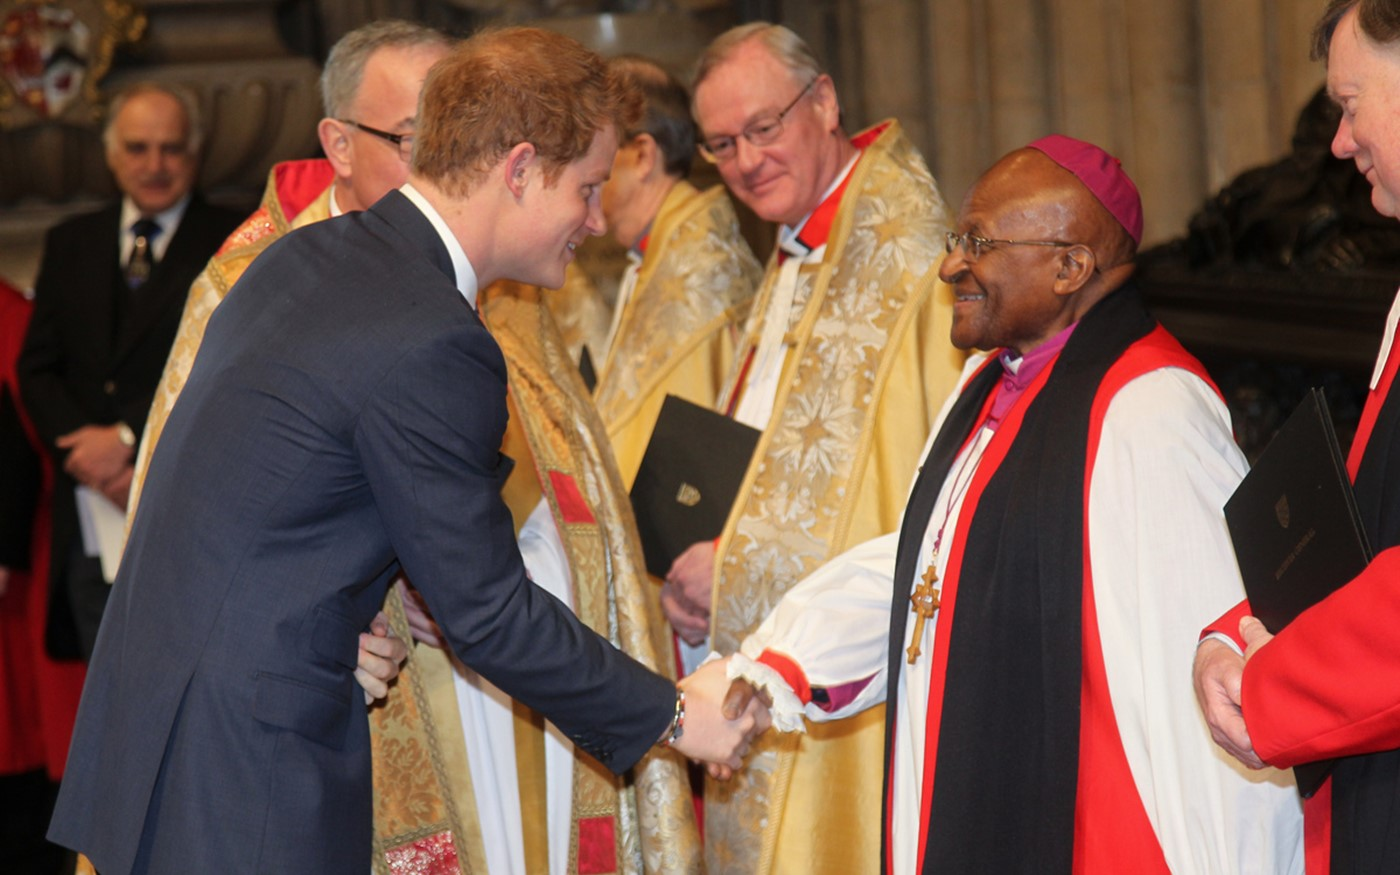 Prince Harry meets Archbishop Emeritus Desmond Tutu after the service